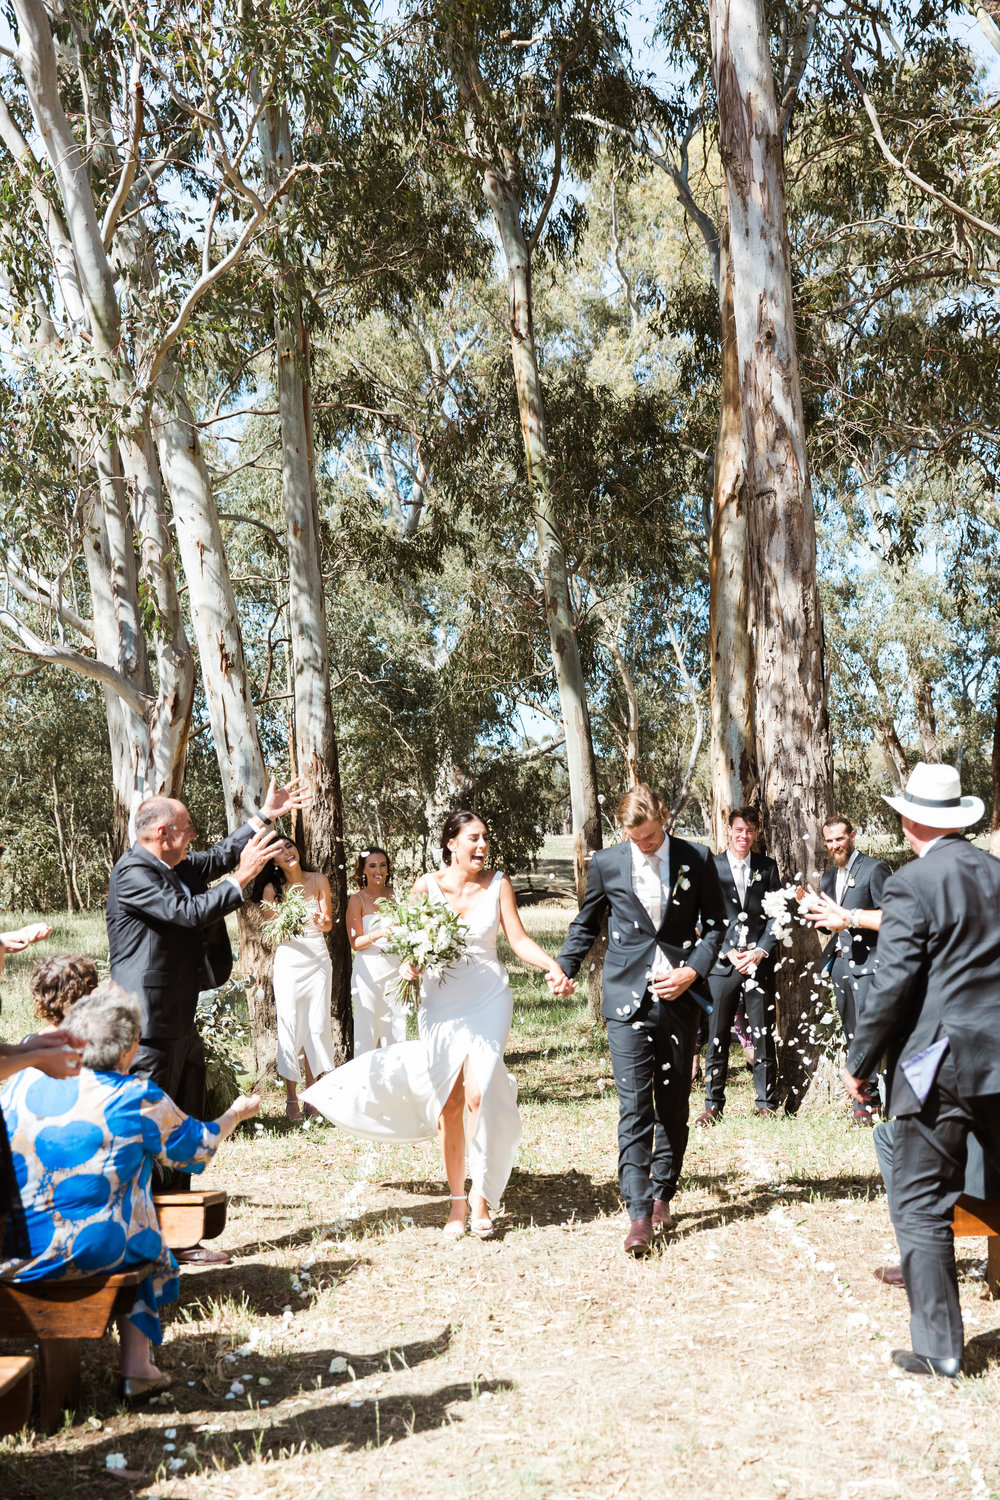 00033- Olive Tree Mediterranean Wedding in Mudgee NSW Australia Fine Art Film Wedding Lifestyle Photographer Sheri McMahon_.jpg